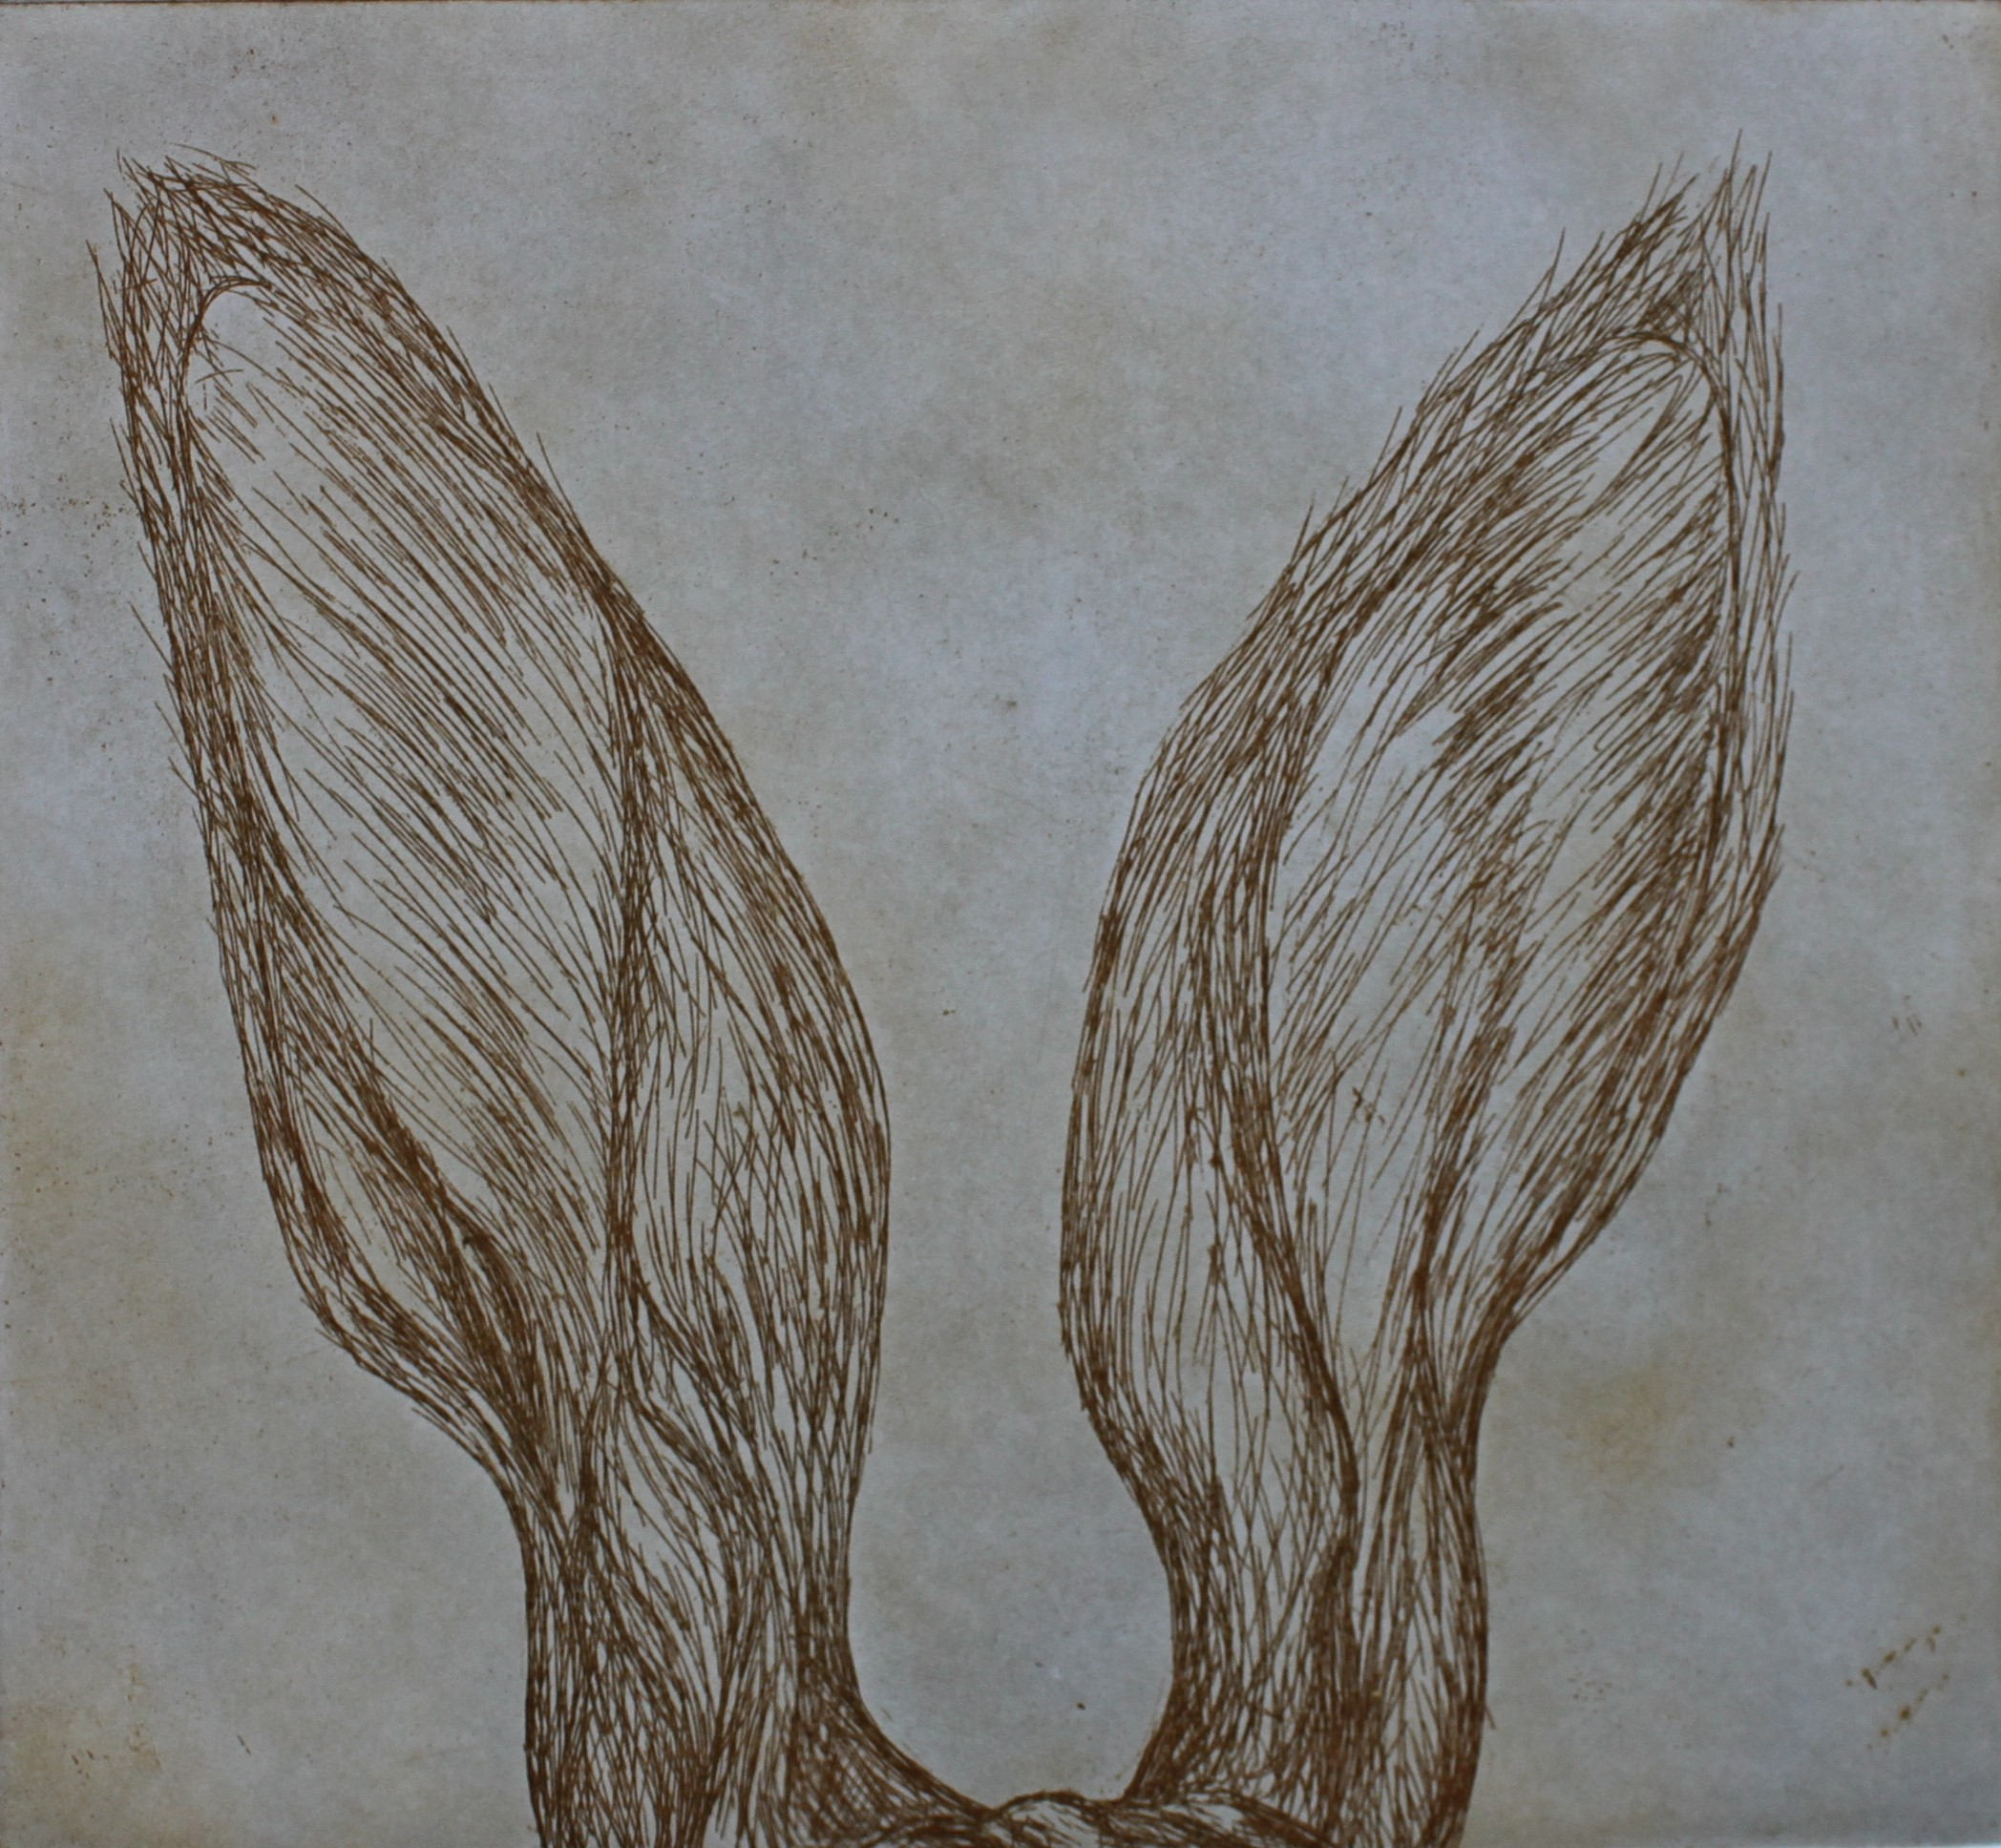 Listin In, 2016, Etching, Edition of 10, 30x20cm